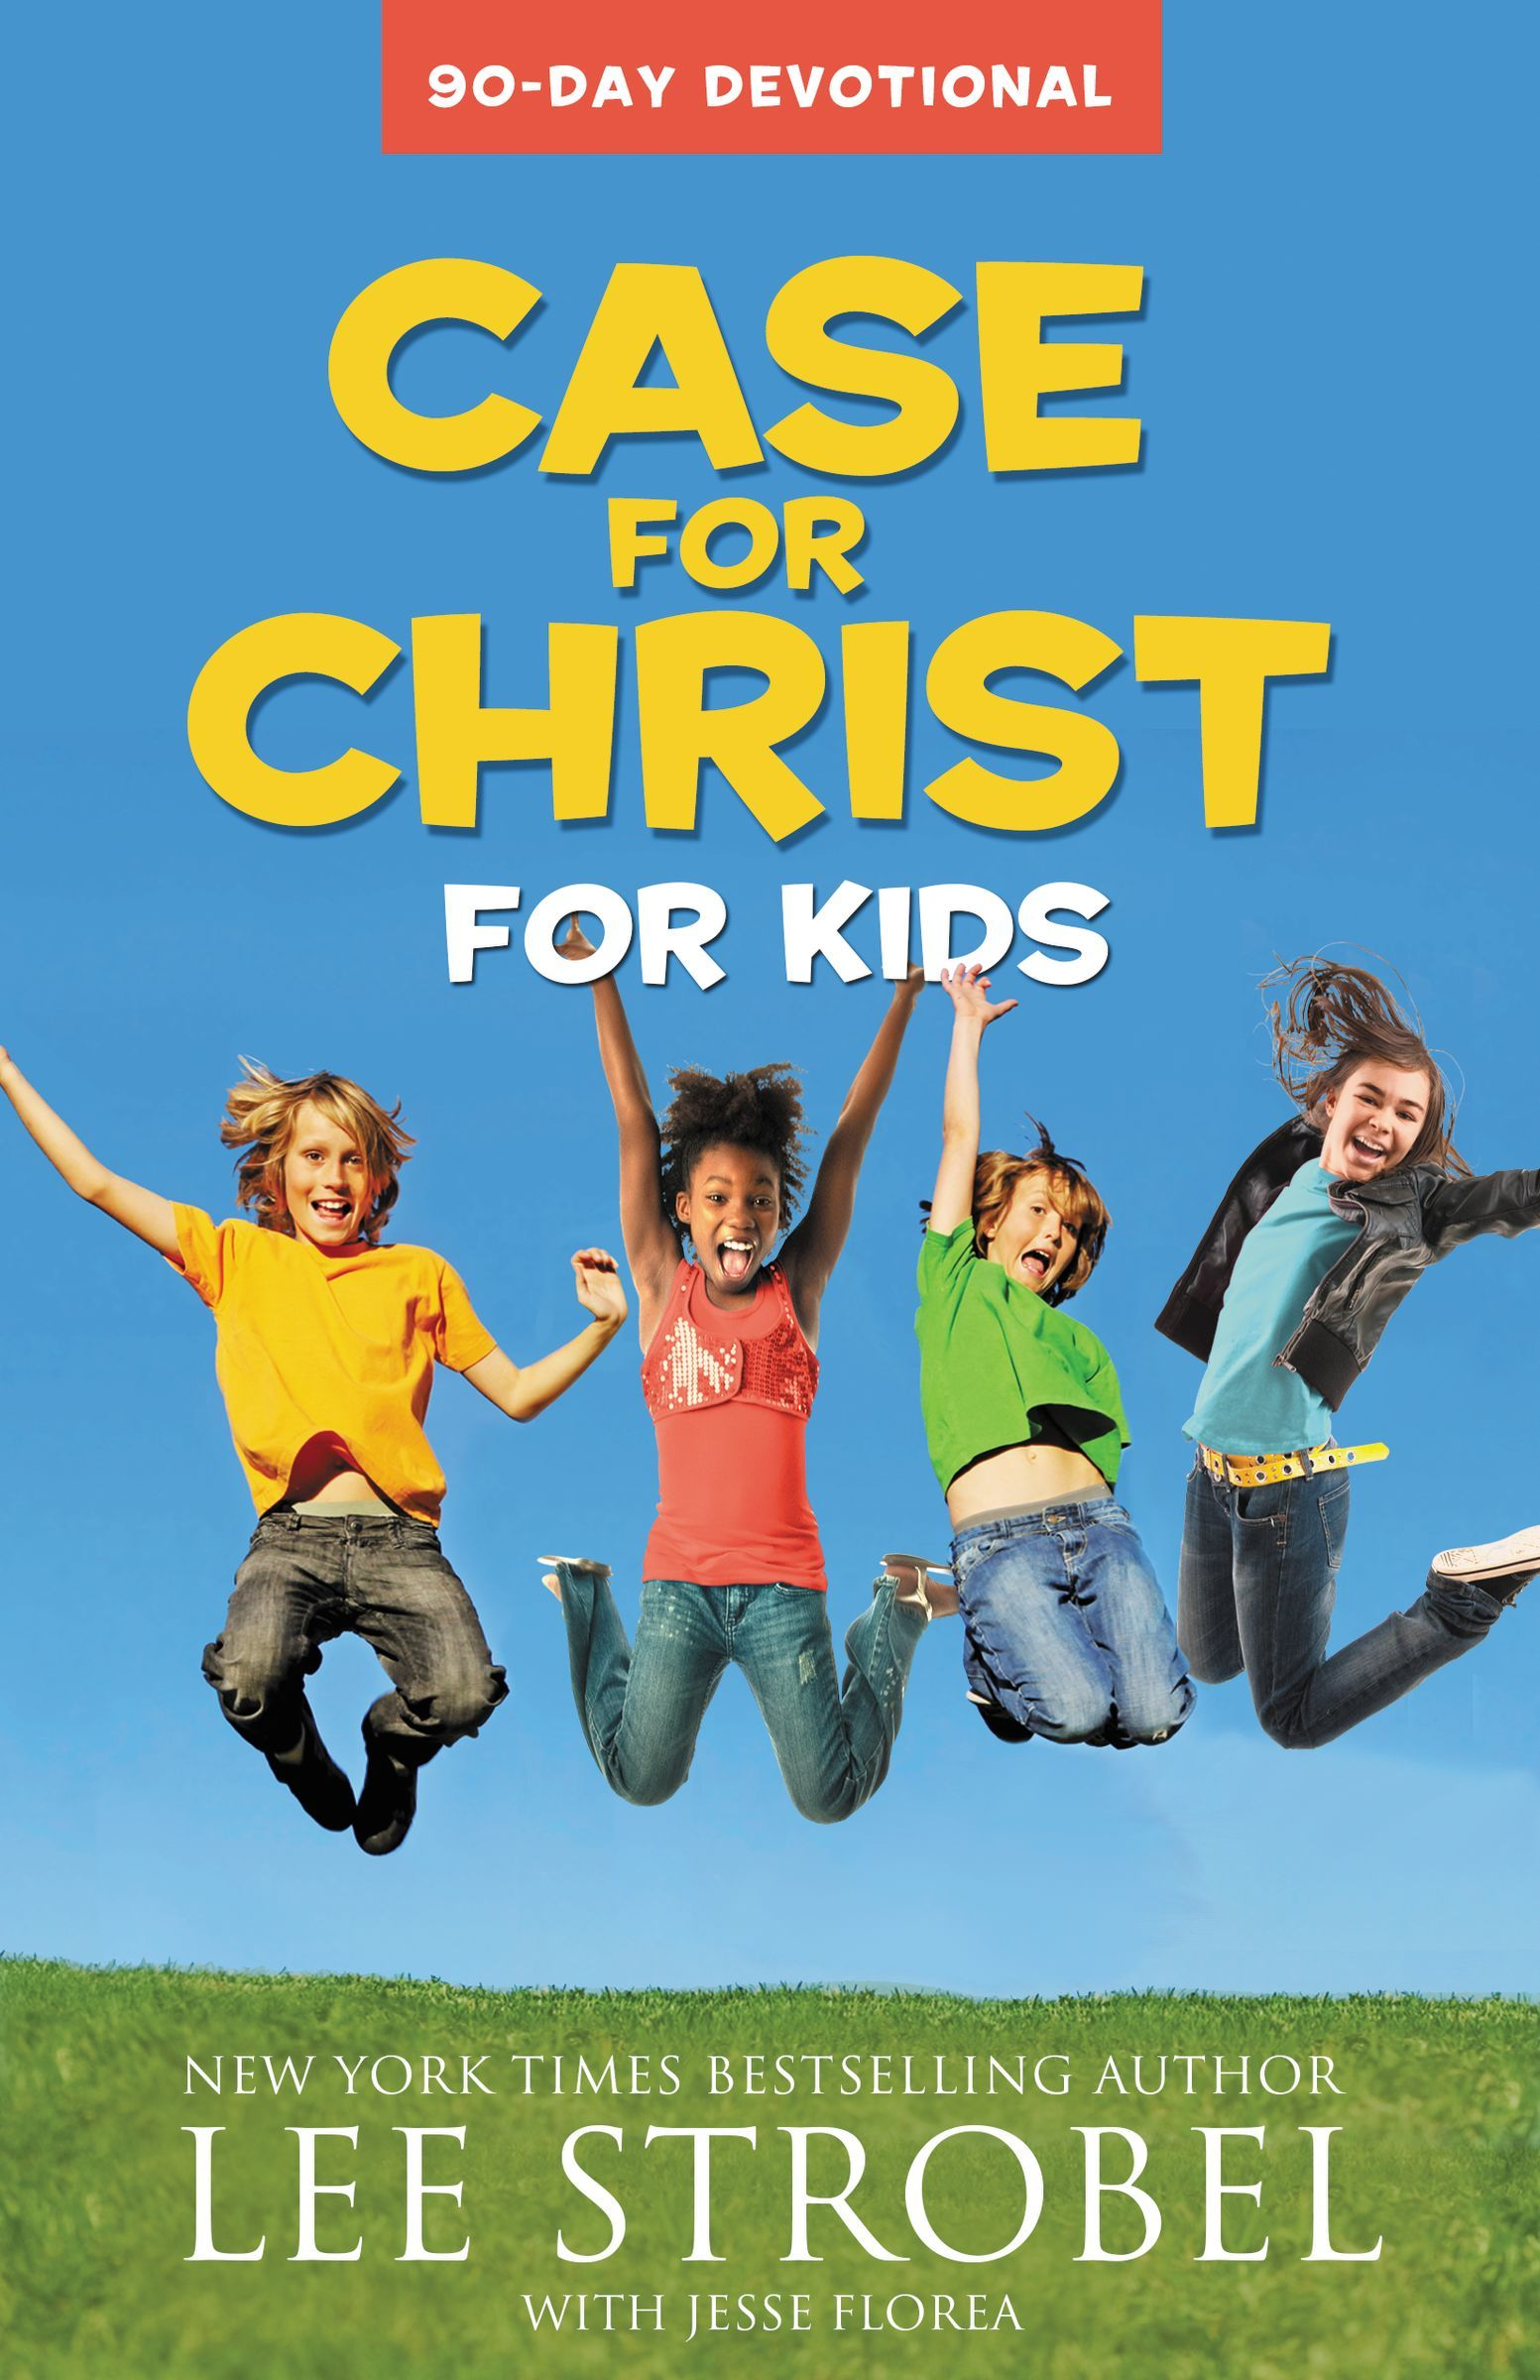 Case for Christ for Kids: A 90 Day Devotional